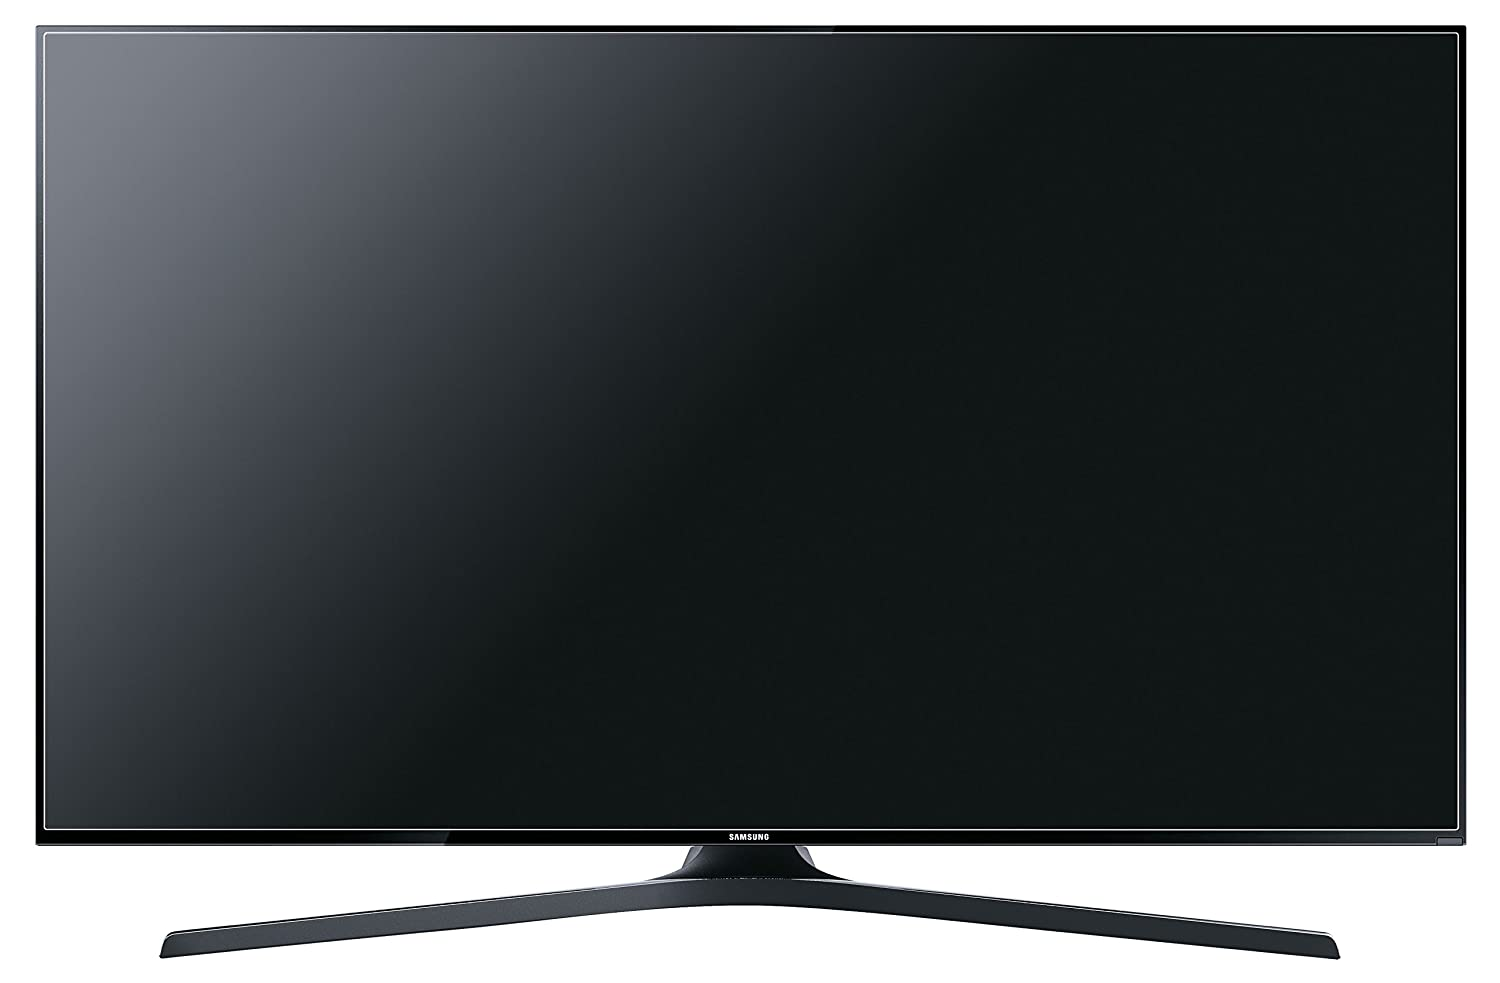 samsung ue55j6250 138 cm 55 zoll fernseher full hd triple tuner smart tv ebay. Black Bedroom Furniture Sets. Home Design Ideas